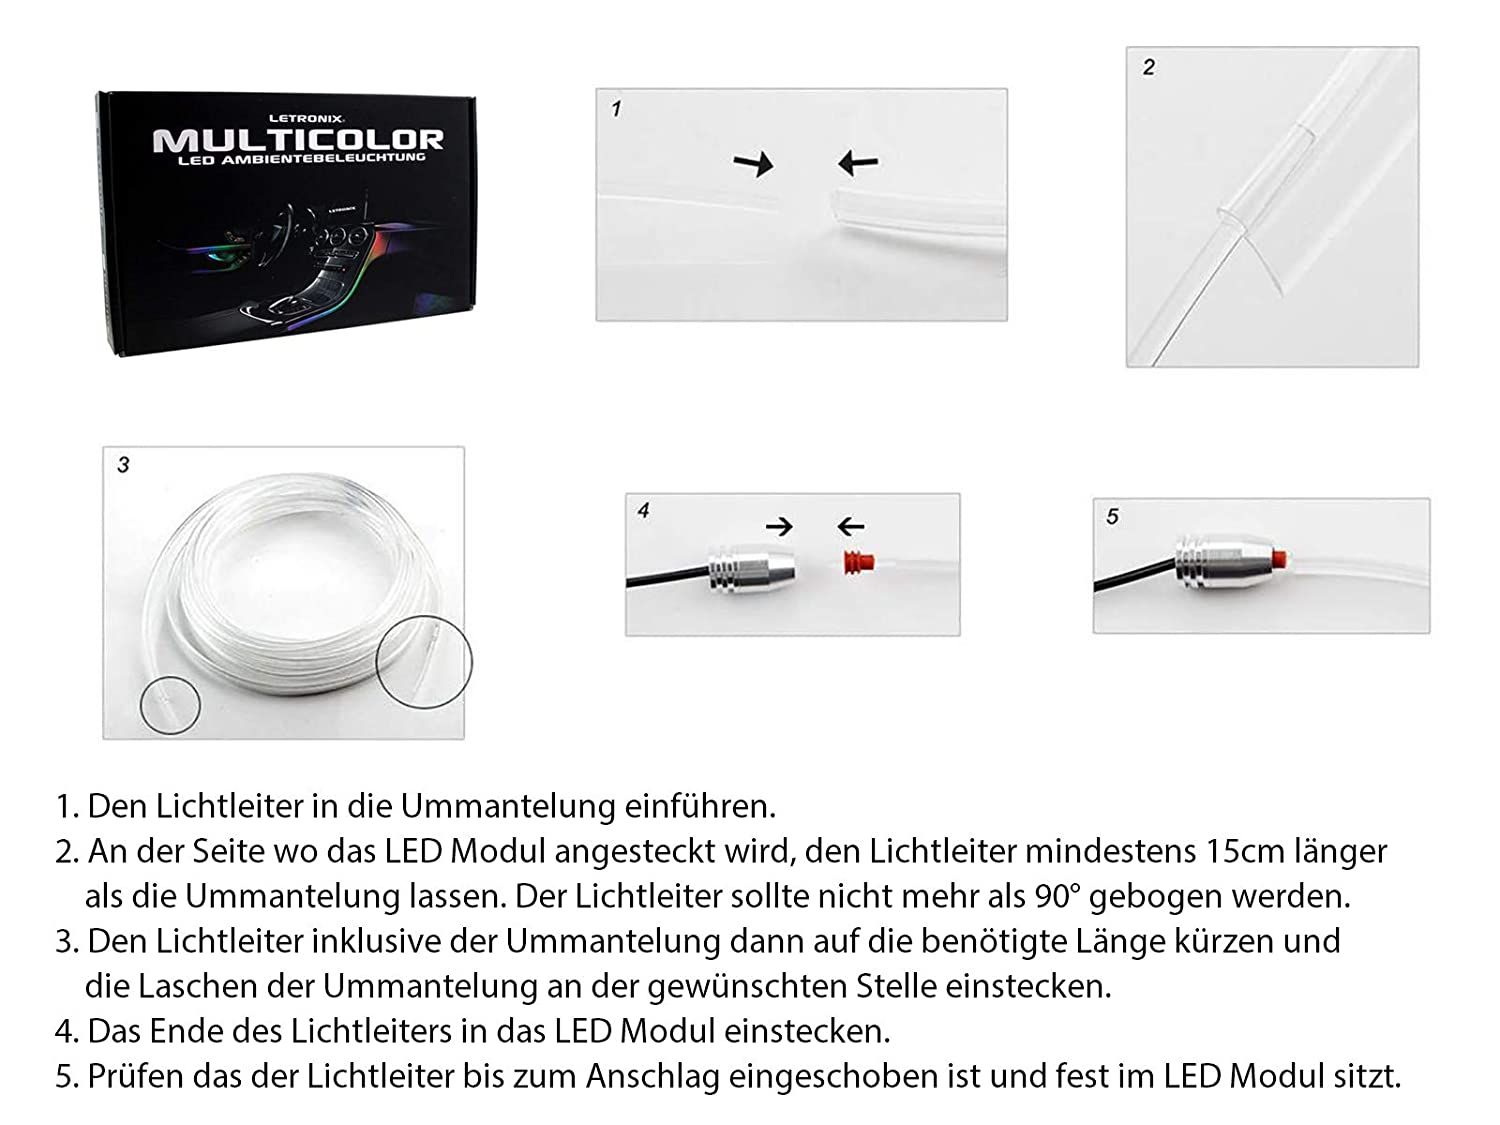 LETRONIX 4 LED Module LETRONIX RGB LED Ambientebeleuchtung 4 LED Module 6M Lichtleiter mit Bluetooth App Steuerung Auto Innenraumbeleuchtung El-Wire